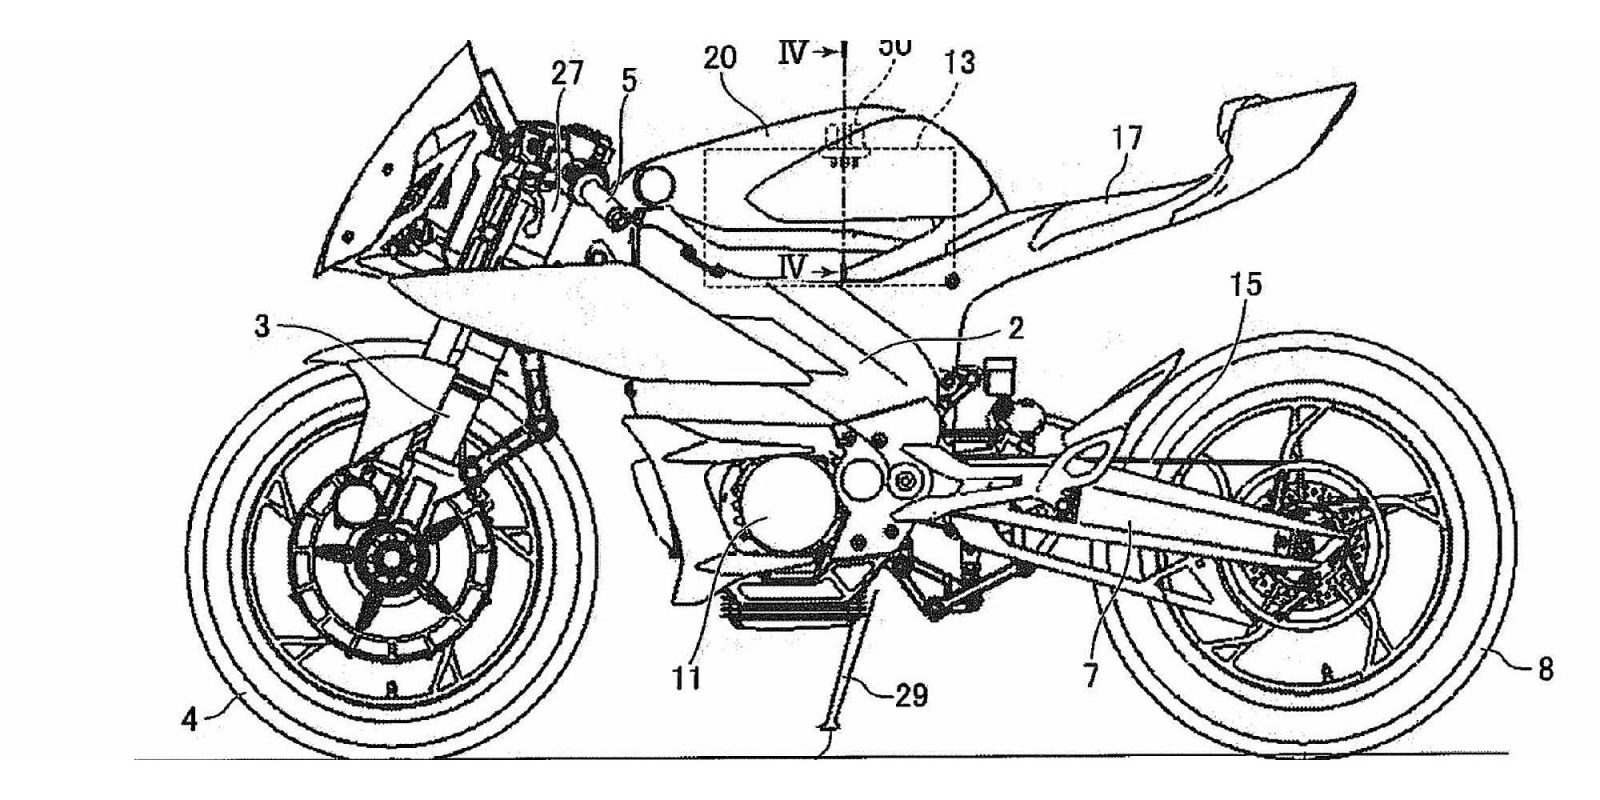 Yamaha patents reveal electric R1 and MT-07